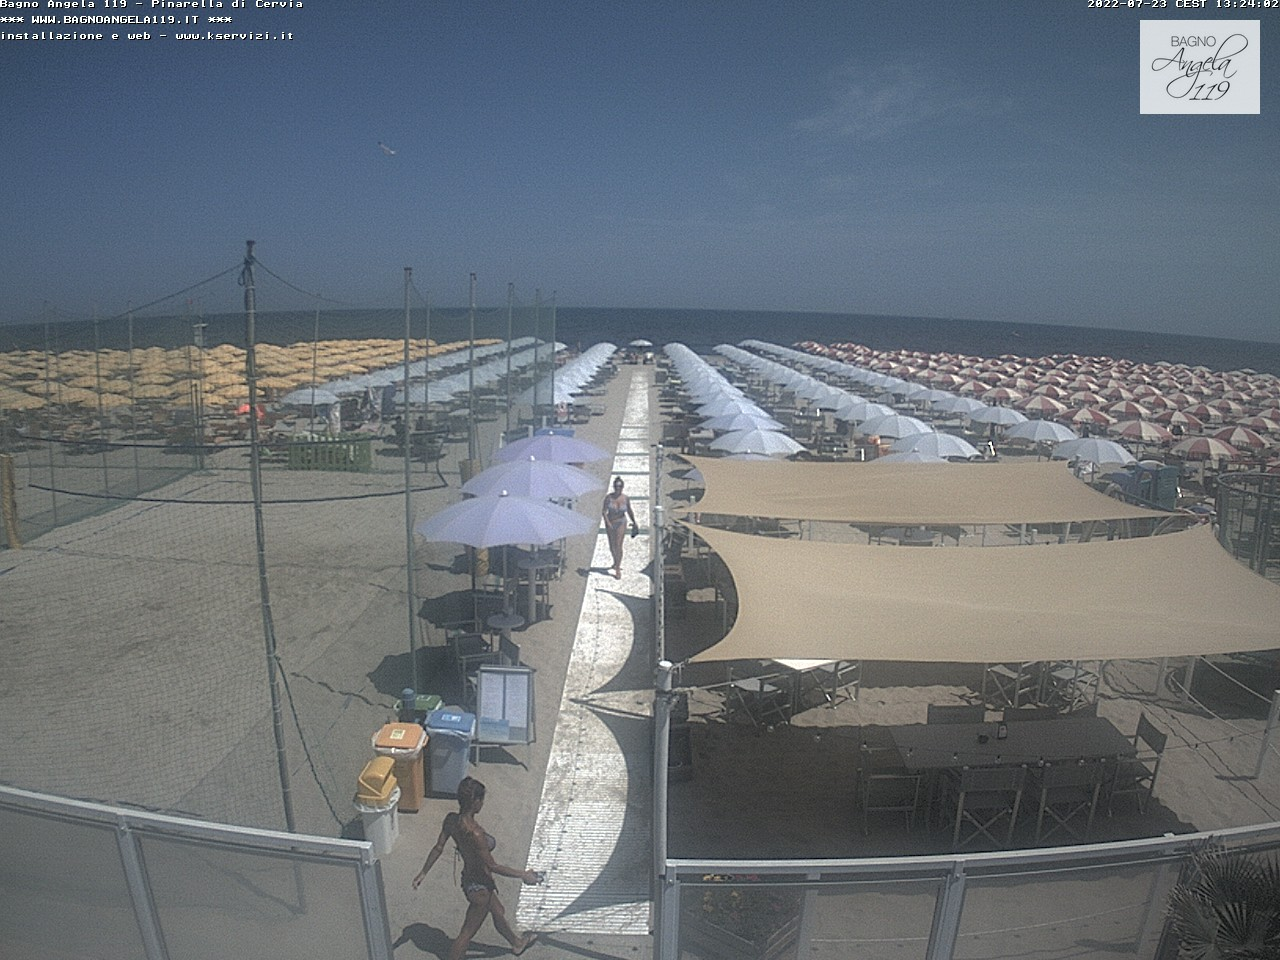 Webcam pinarella di cervia bagno angela beach - Webcam bagno di romagna ...